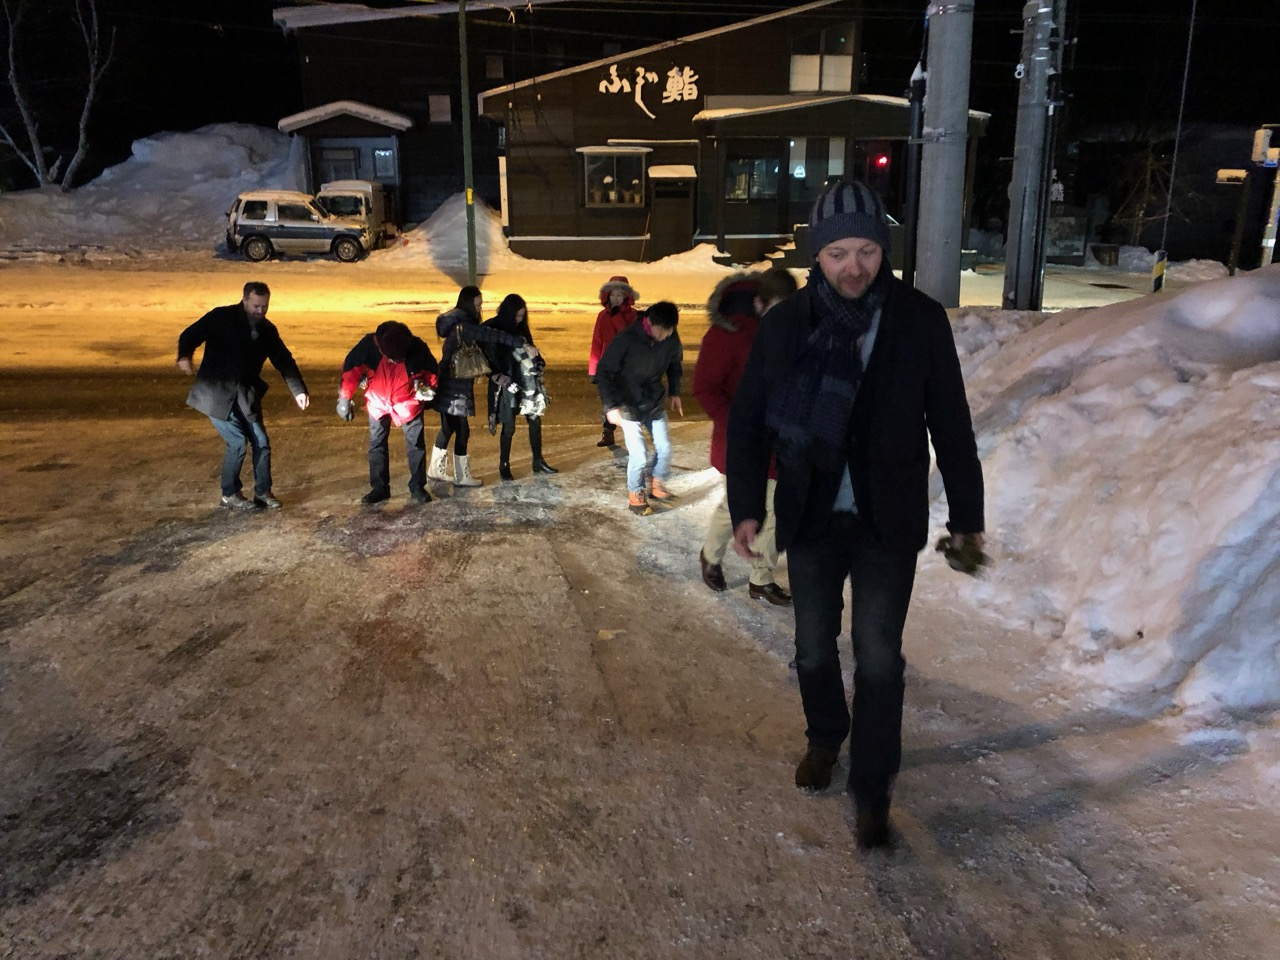 Slip slidin' away: navigating the icy roads of Hirafu as we searched for beer